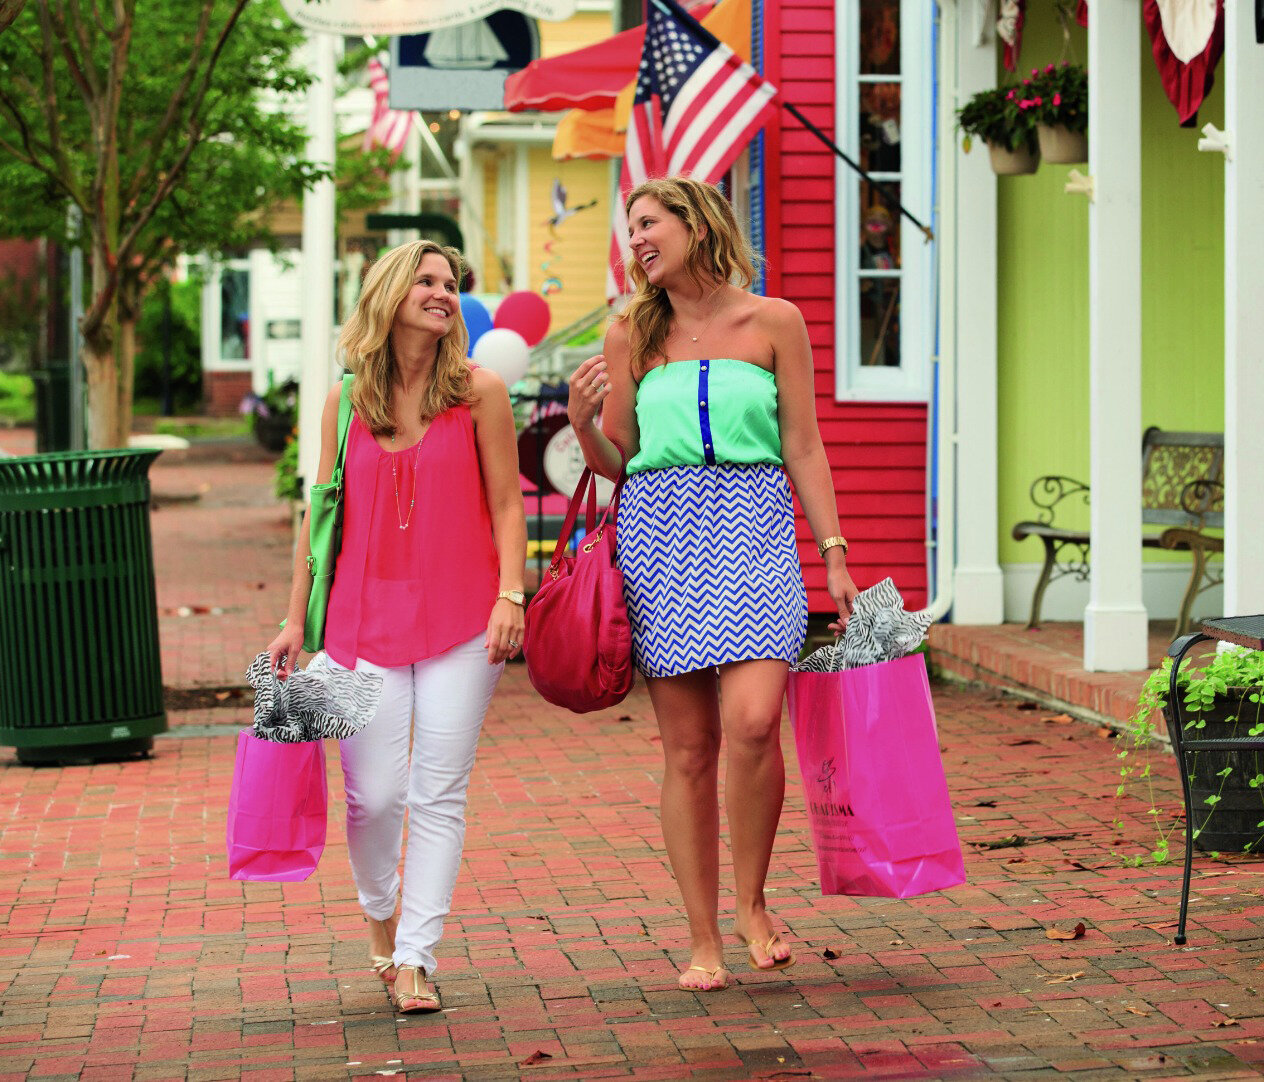 SHOP AND DINE IN ST. MICHAELS